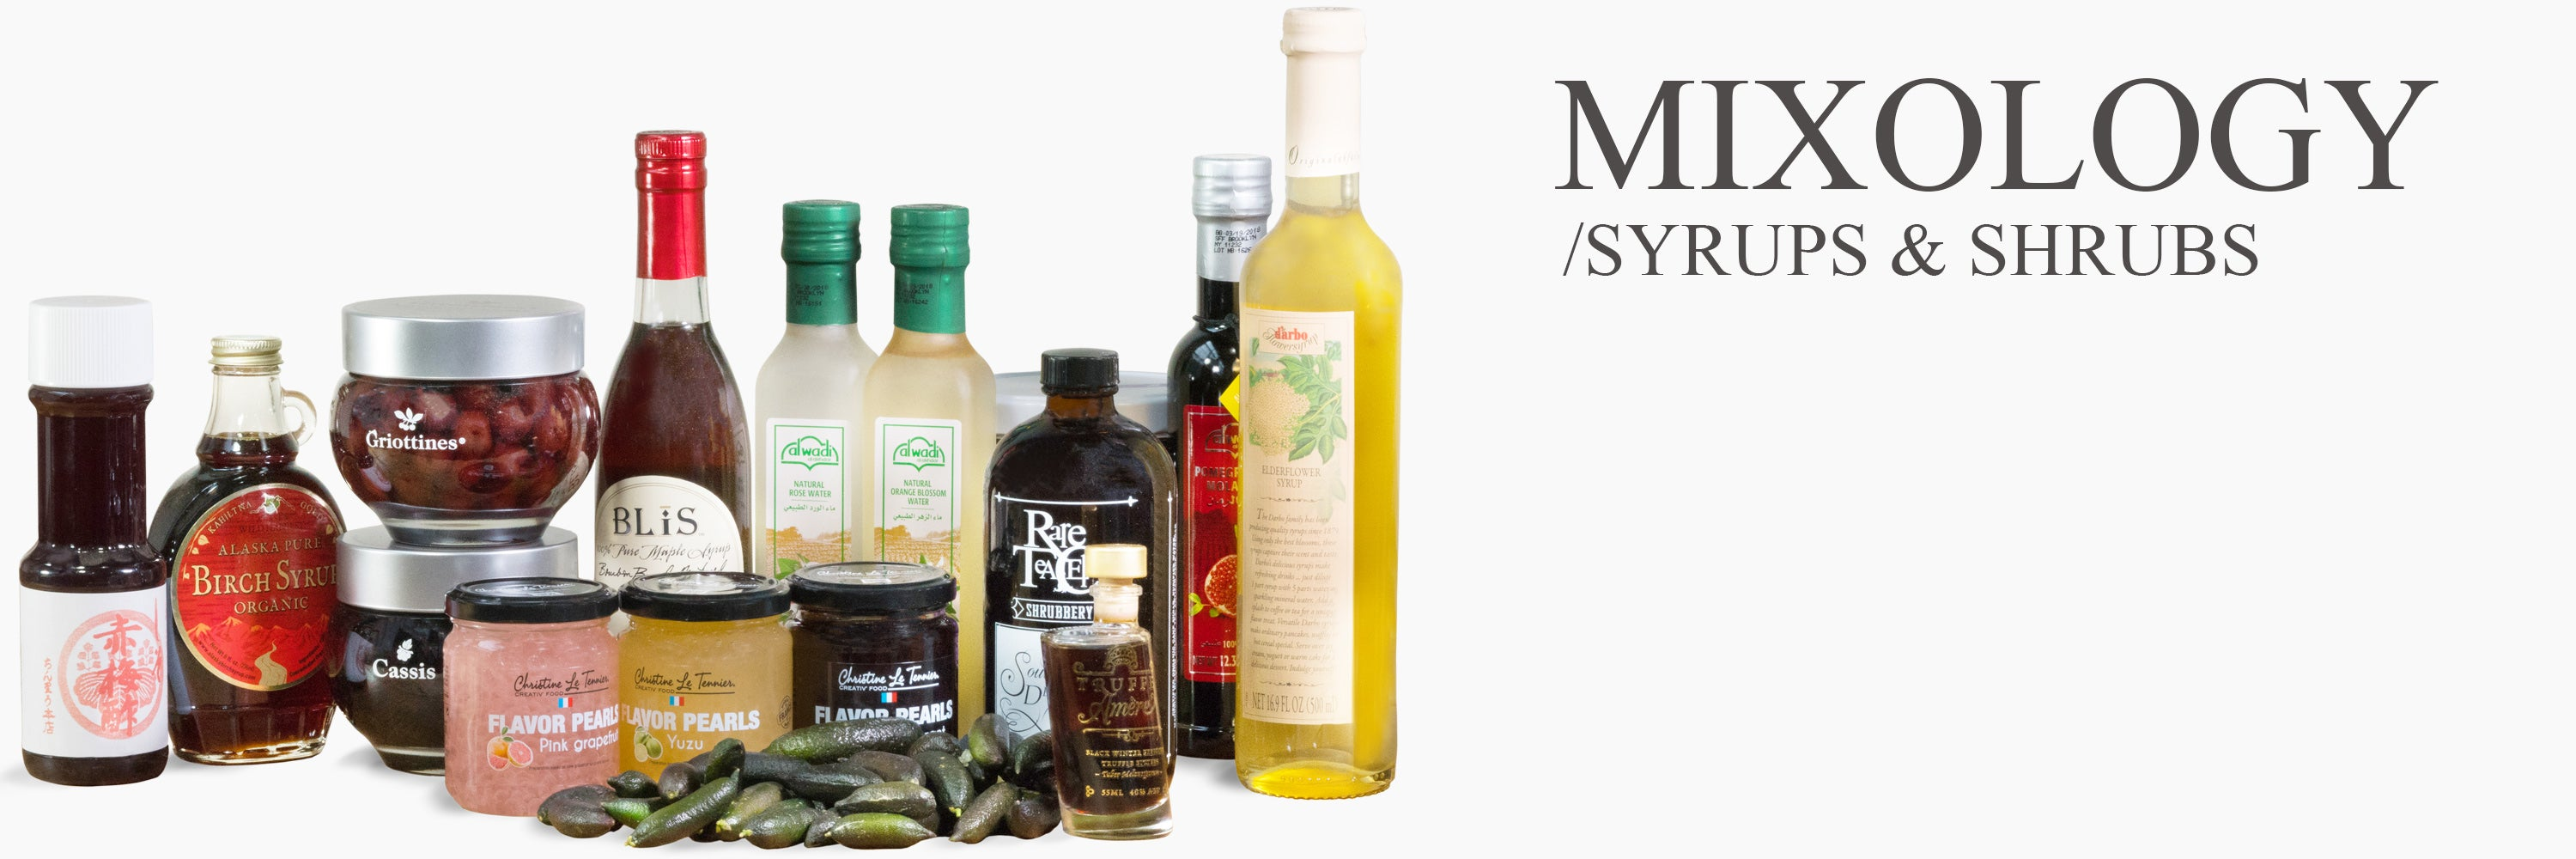 Syrups & Shrubs